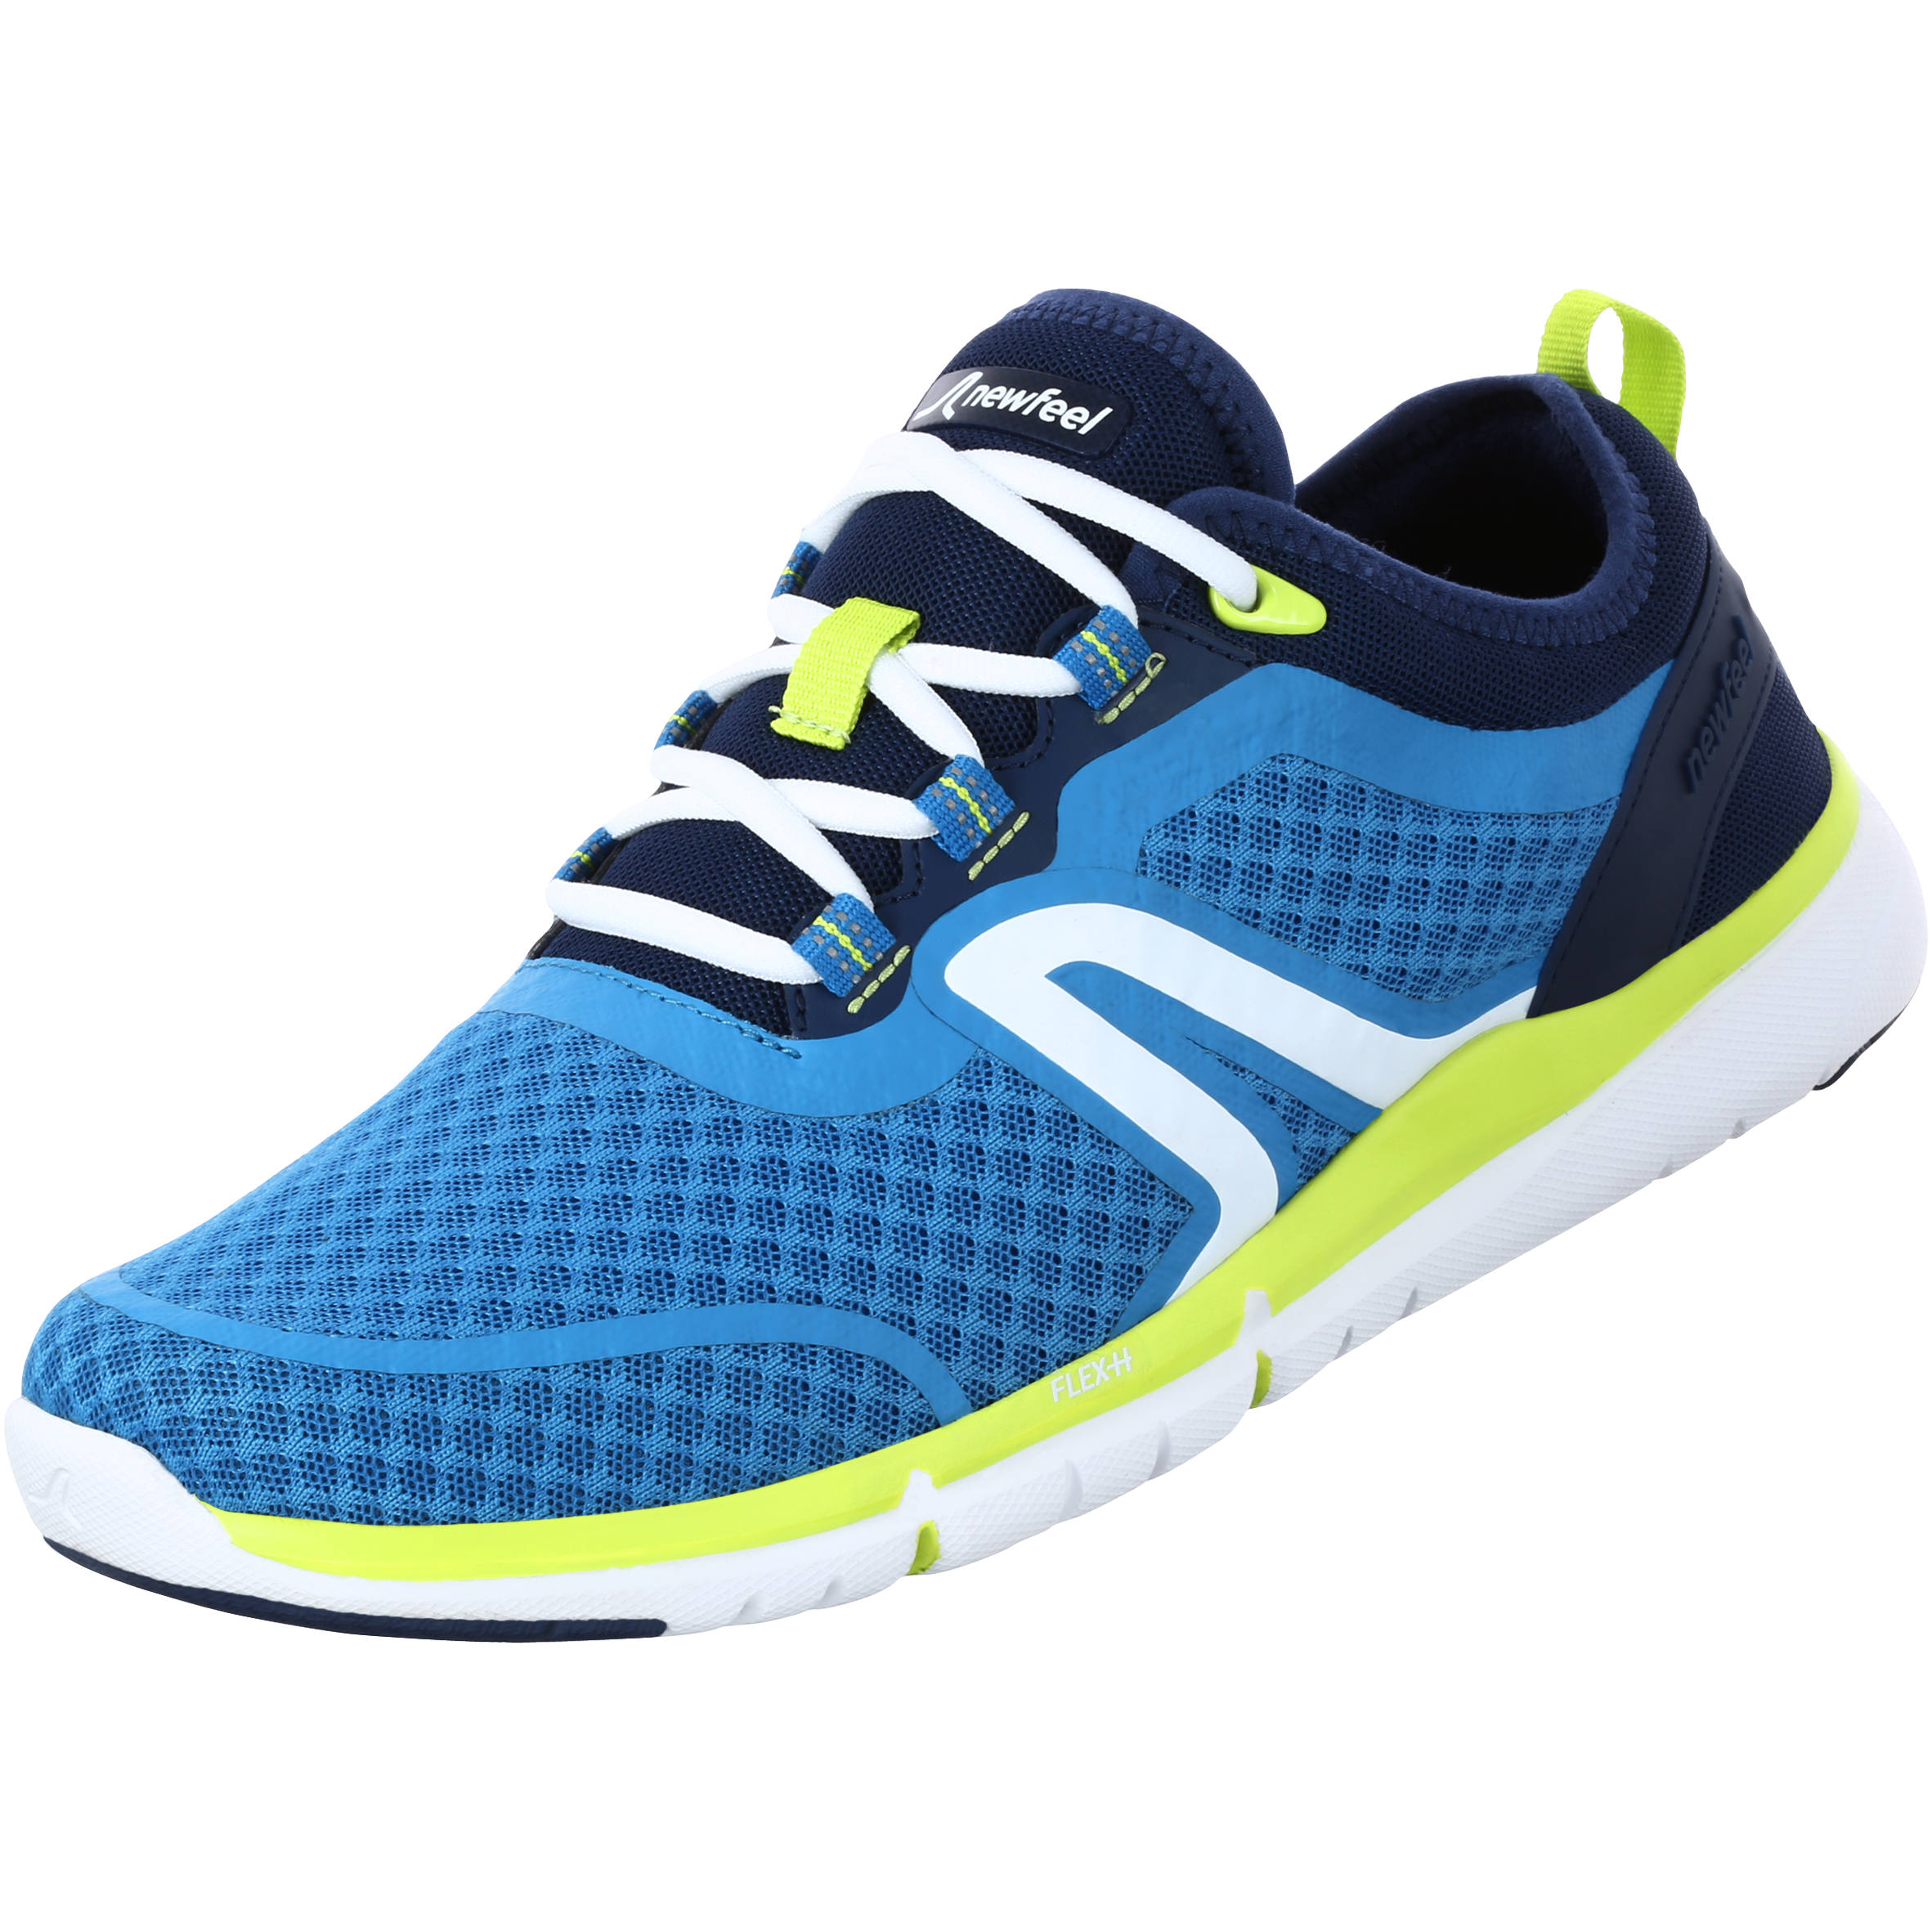 Test chaussure de running decathlon